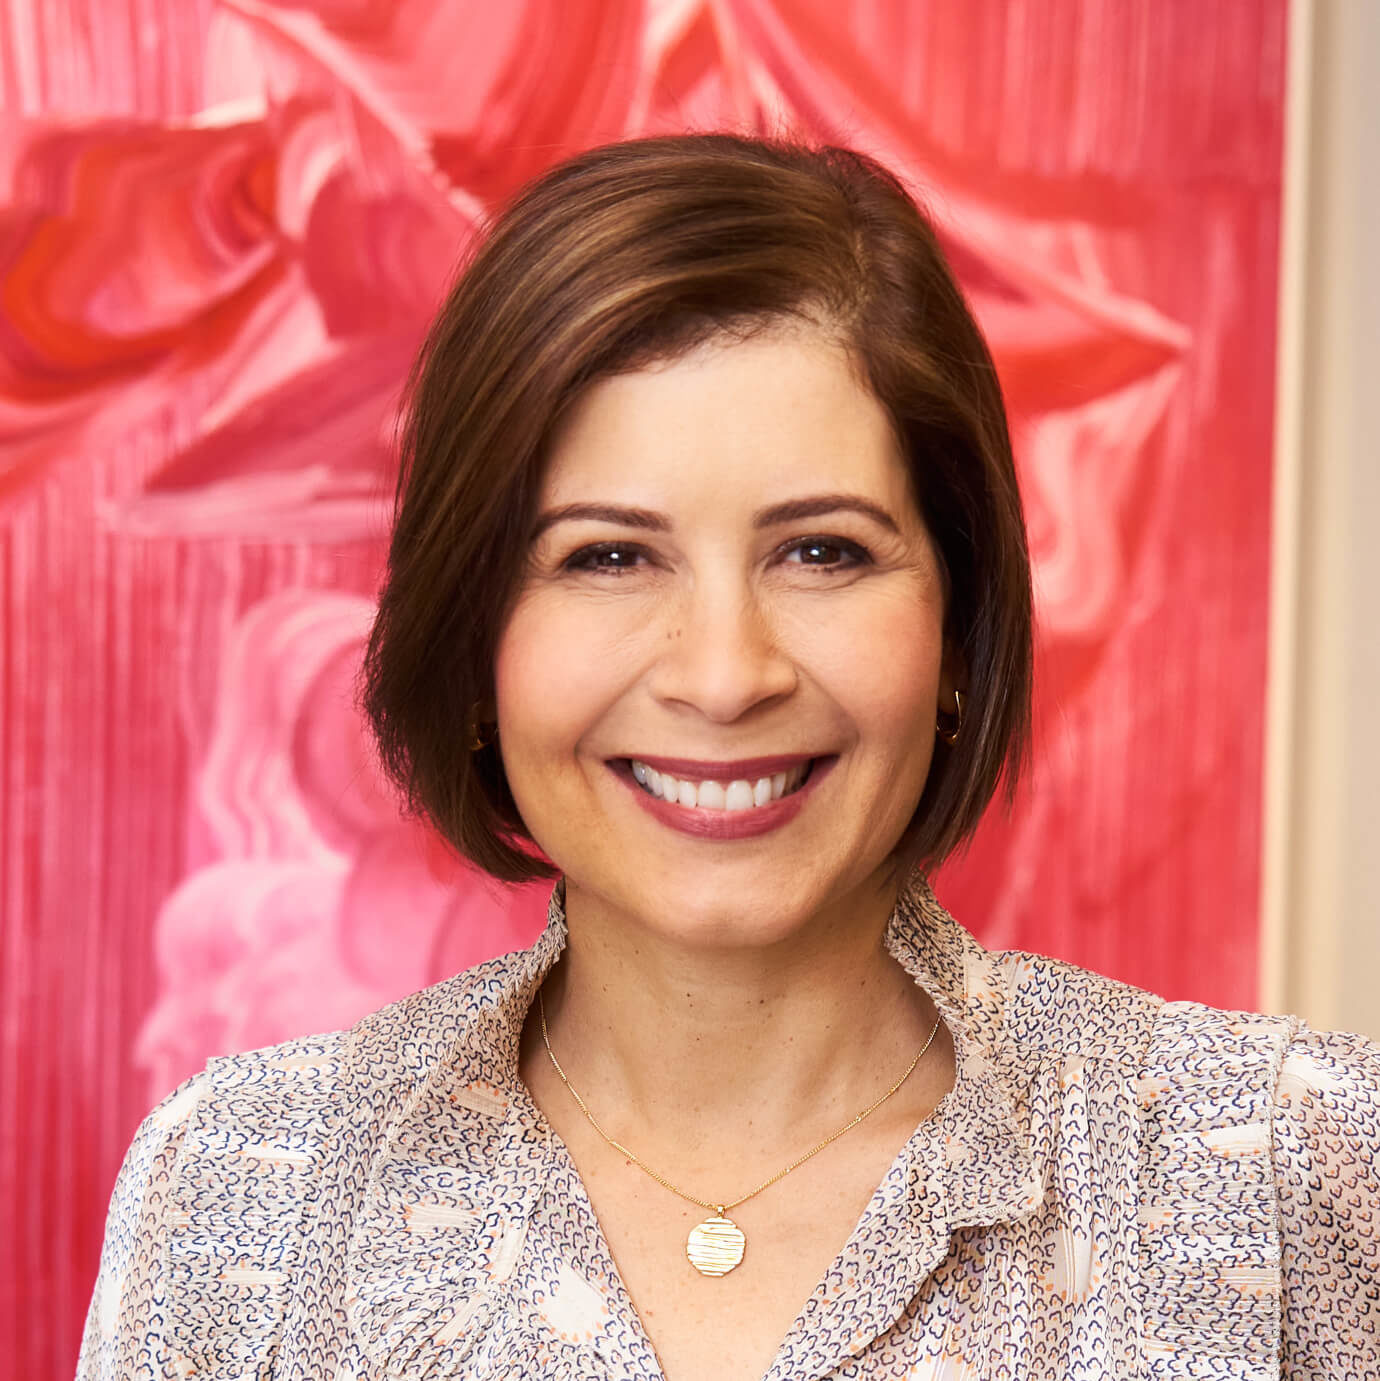 Julia Pimsleur, CEO Million Dollar Women